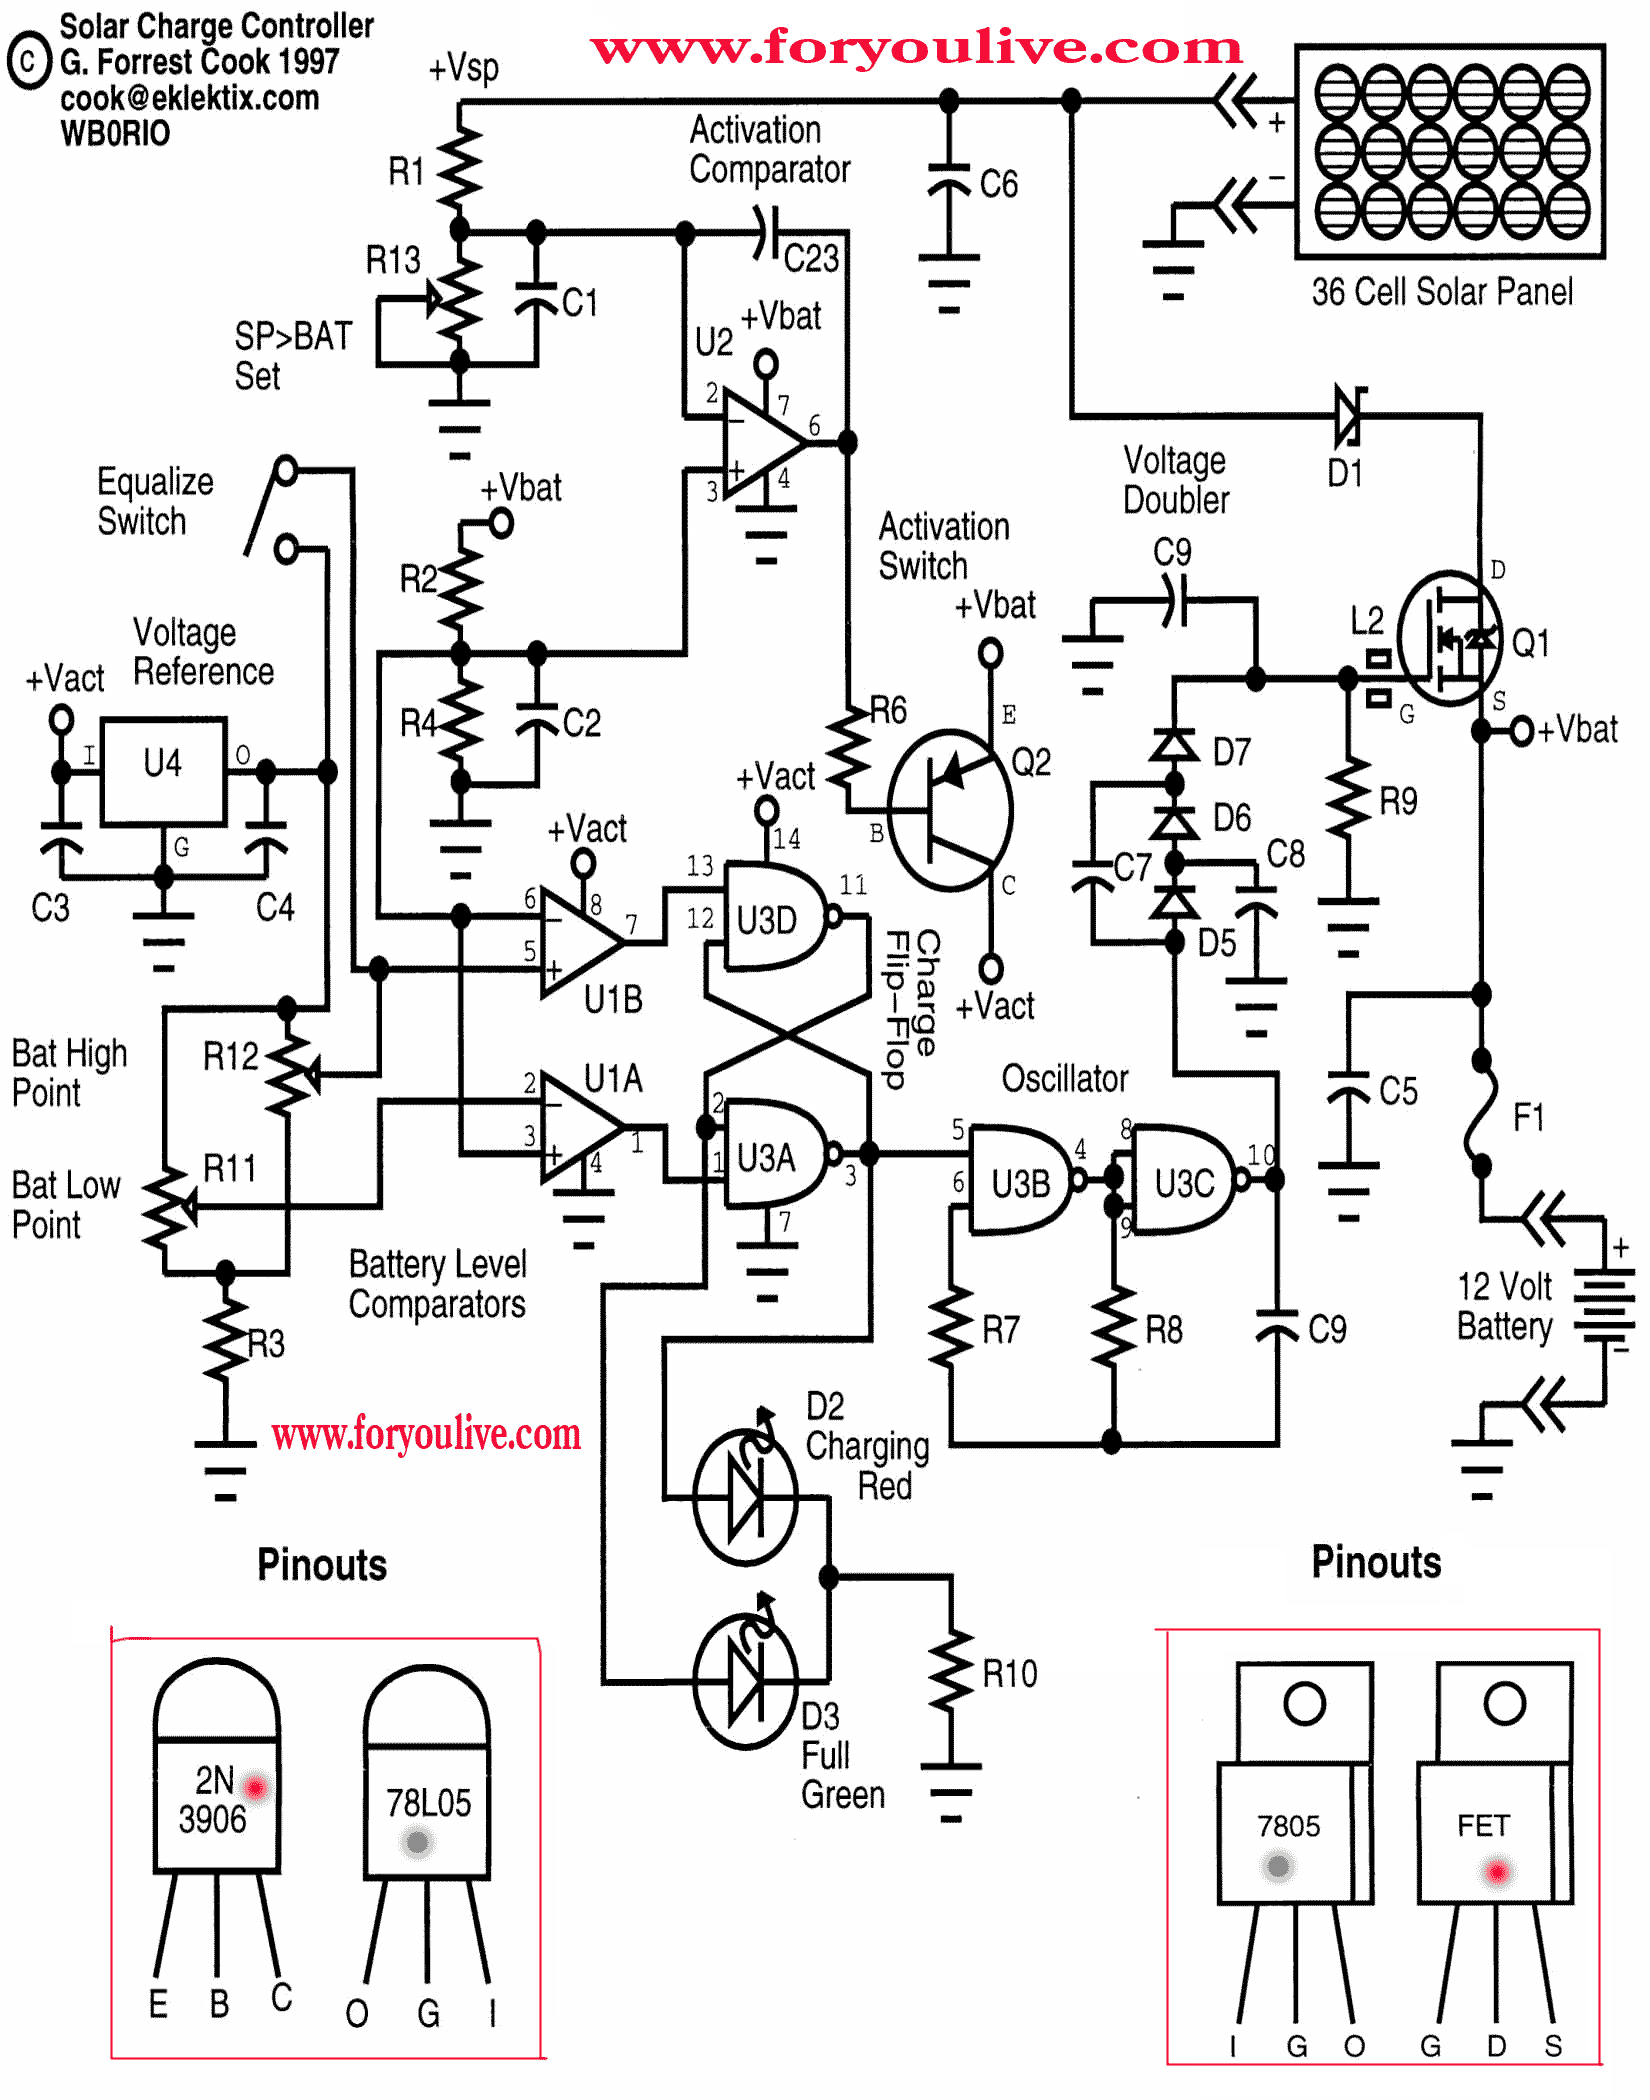 hight resolution of solar panel circuit 5volt regulate voltage 2n3906 is transistor for current caring irfz34 power